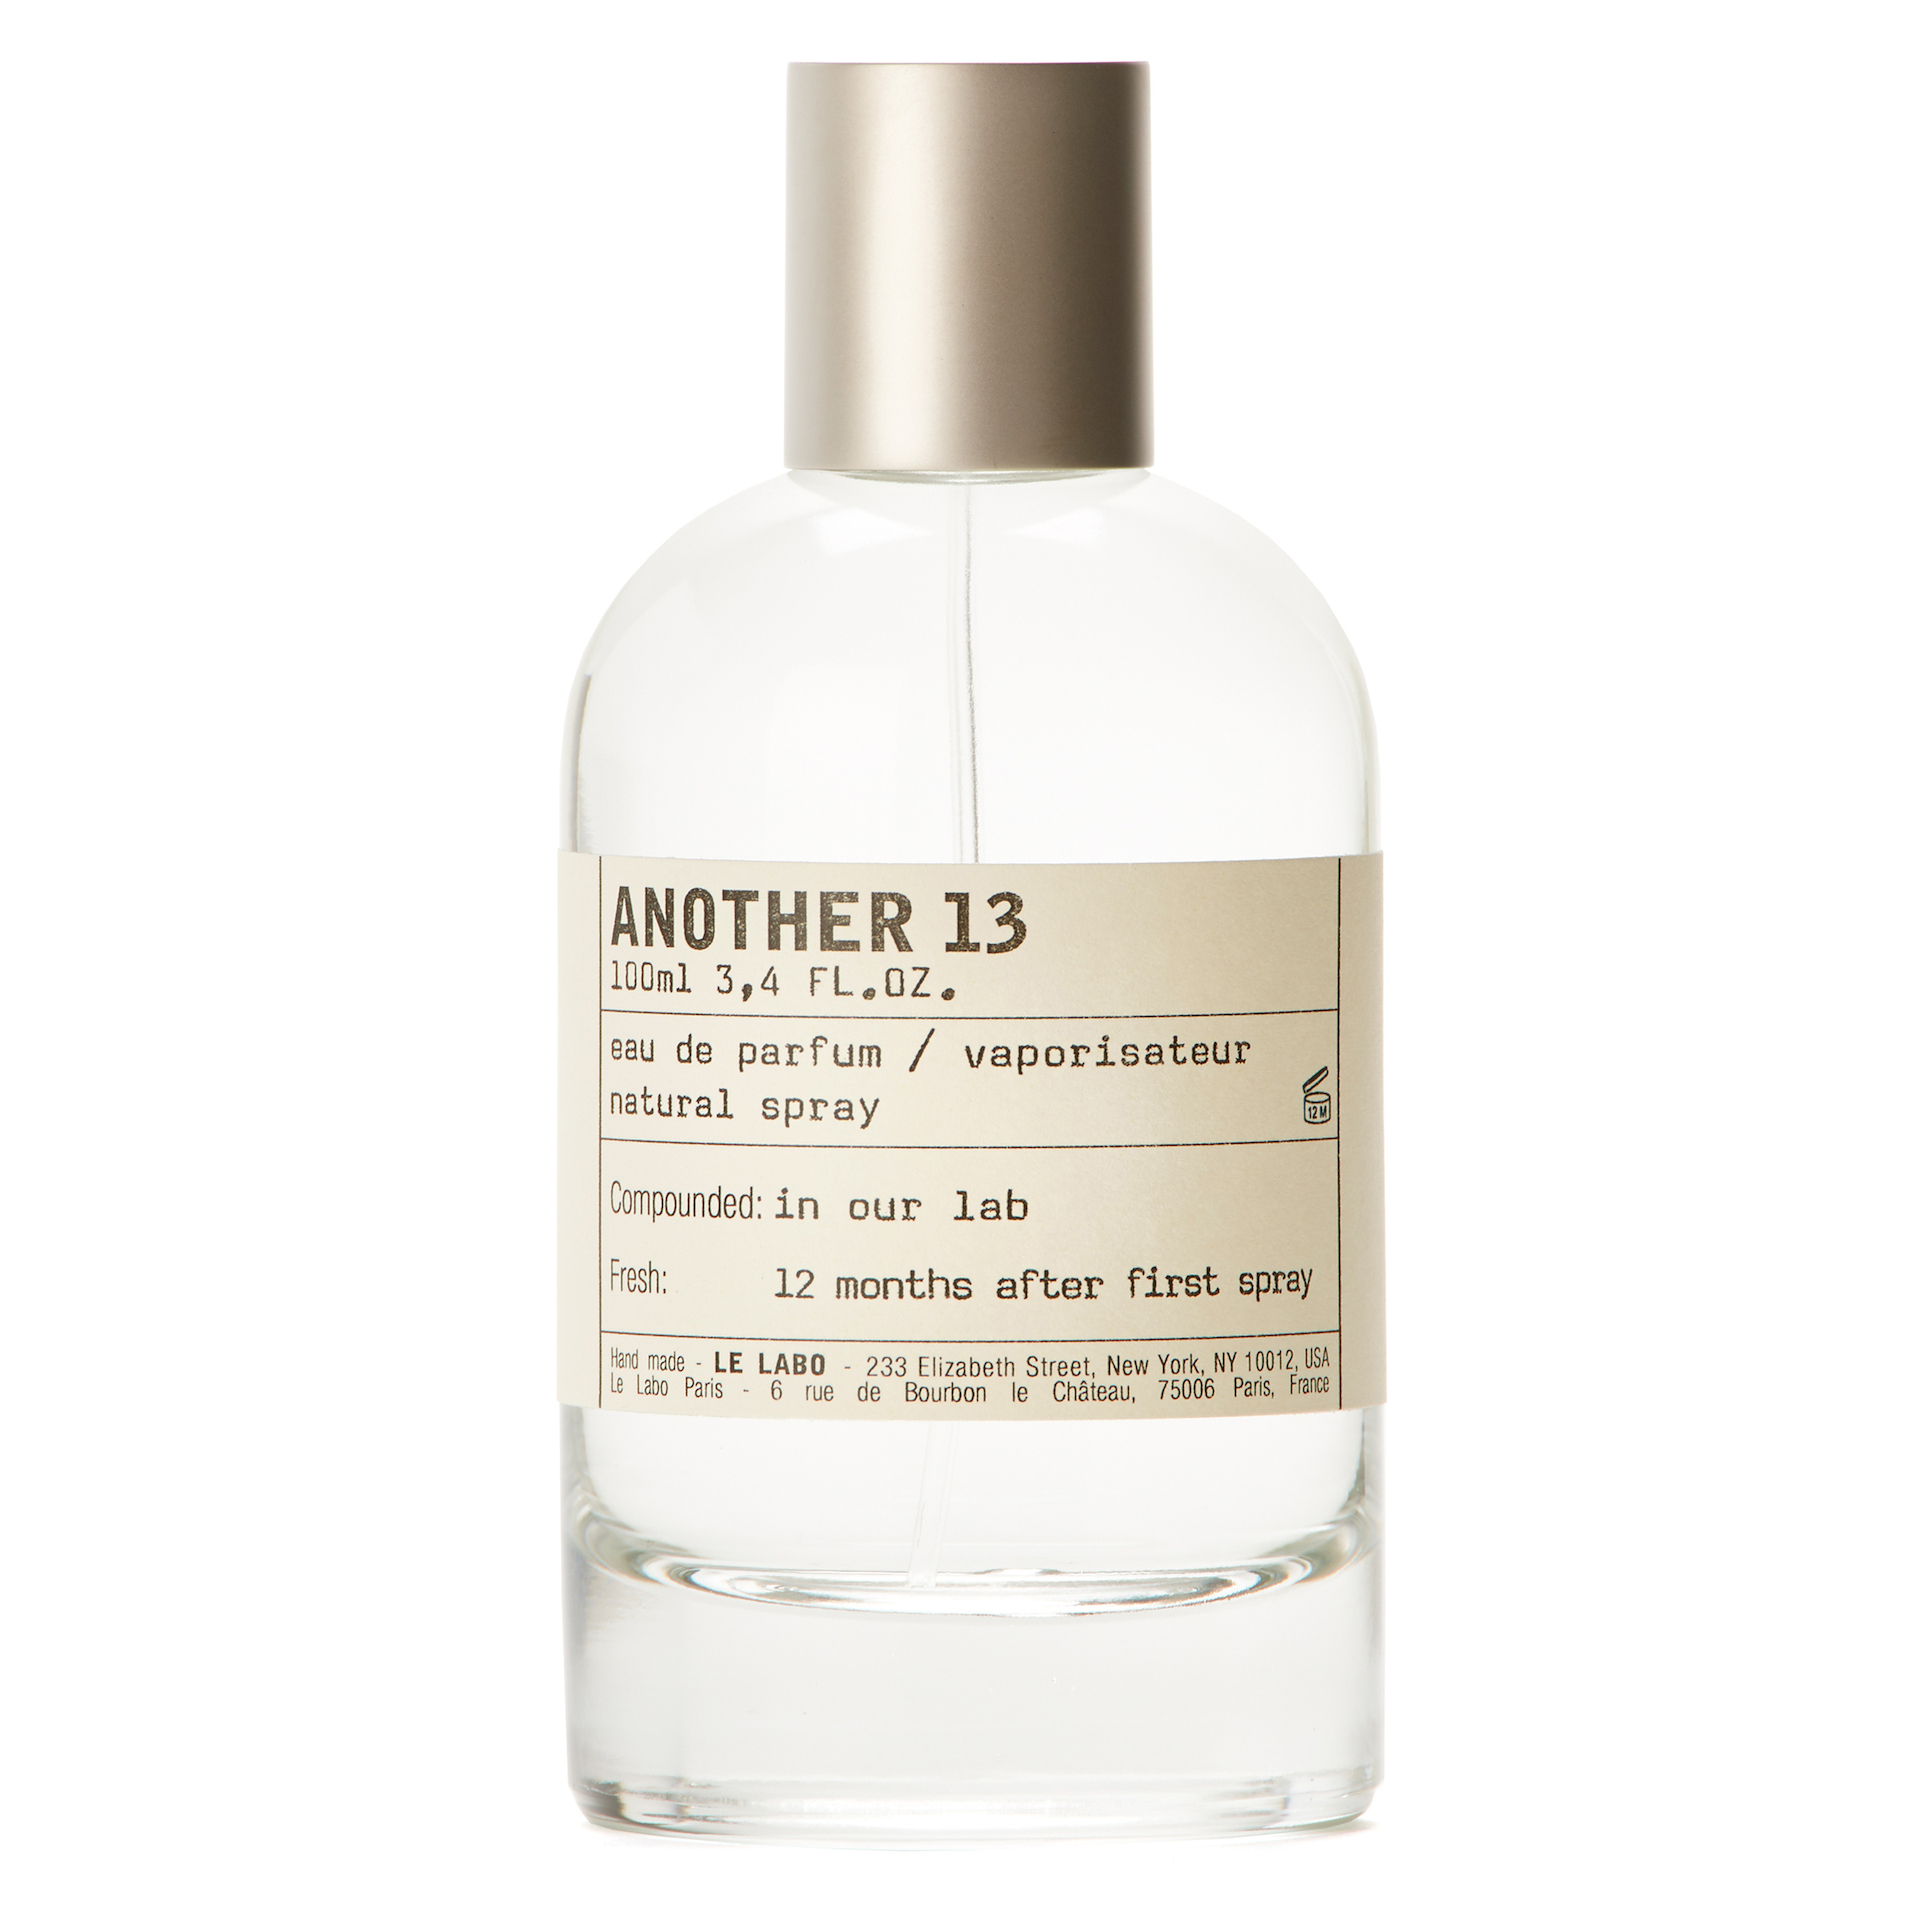 Another 13 Edp 100ml